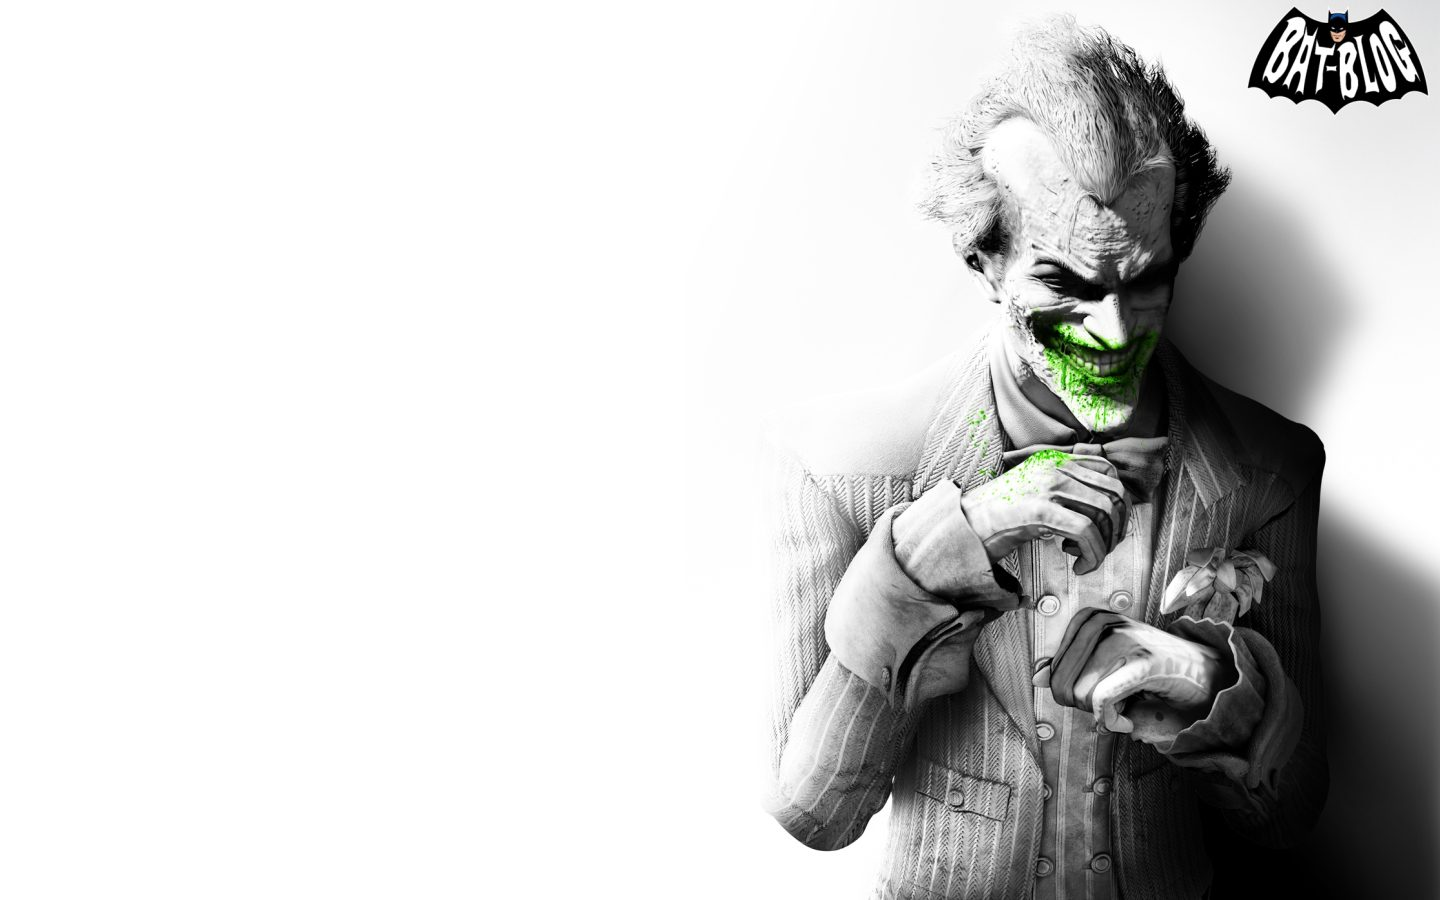 Wallpaper Batman Arkham City Download Wallpaper DaWallpaperz 1440x900